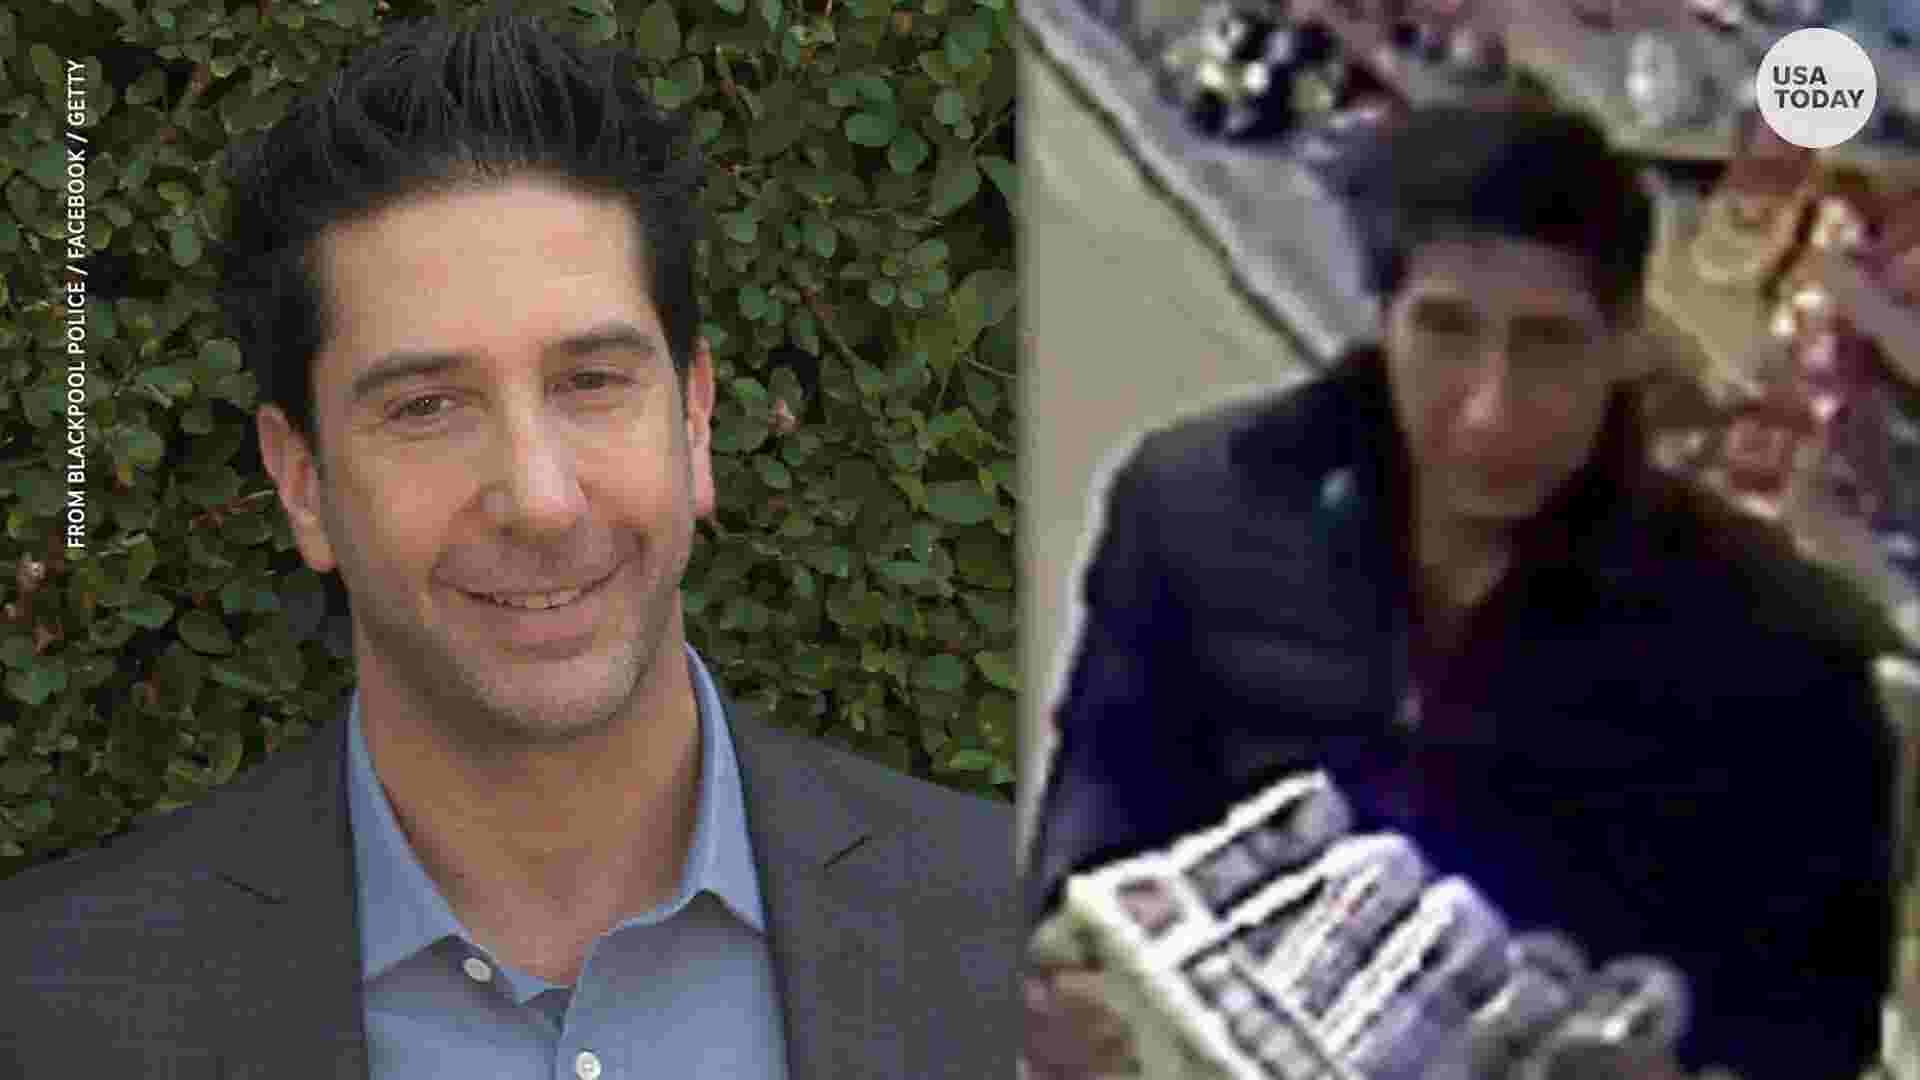 david schwimmer lookalike finally arrested for stealing beer